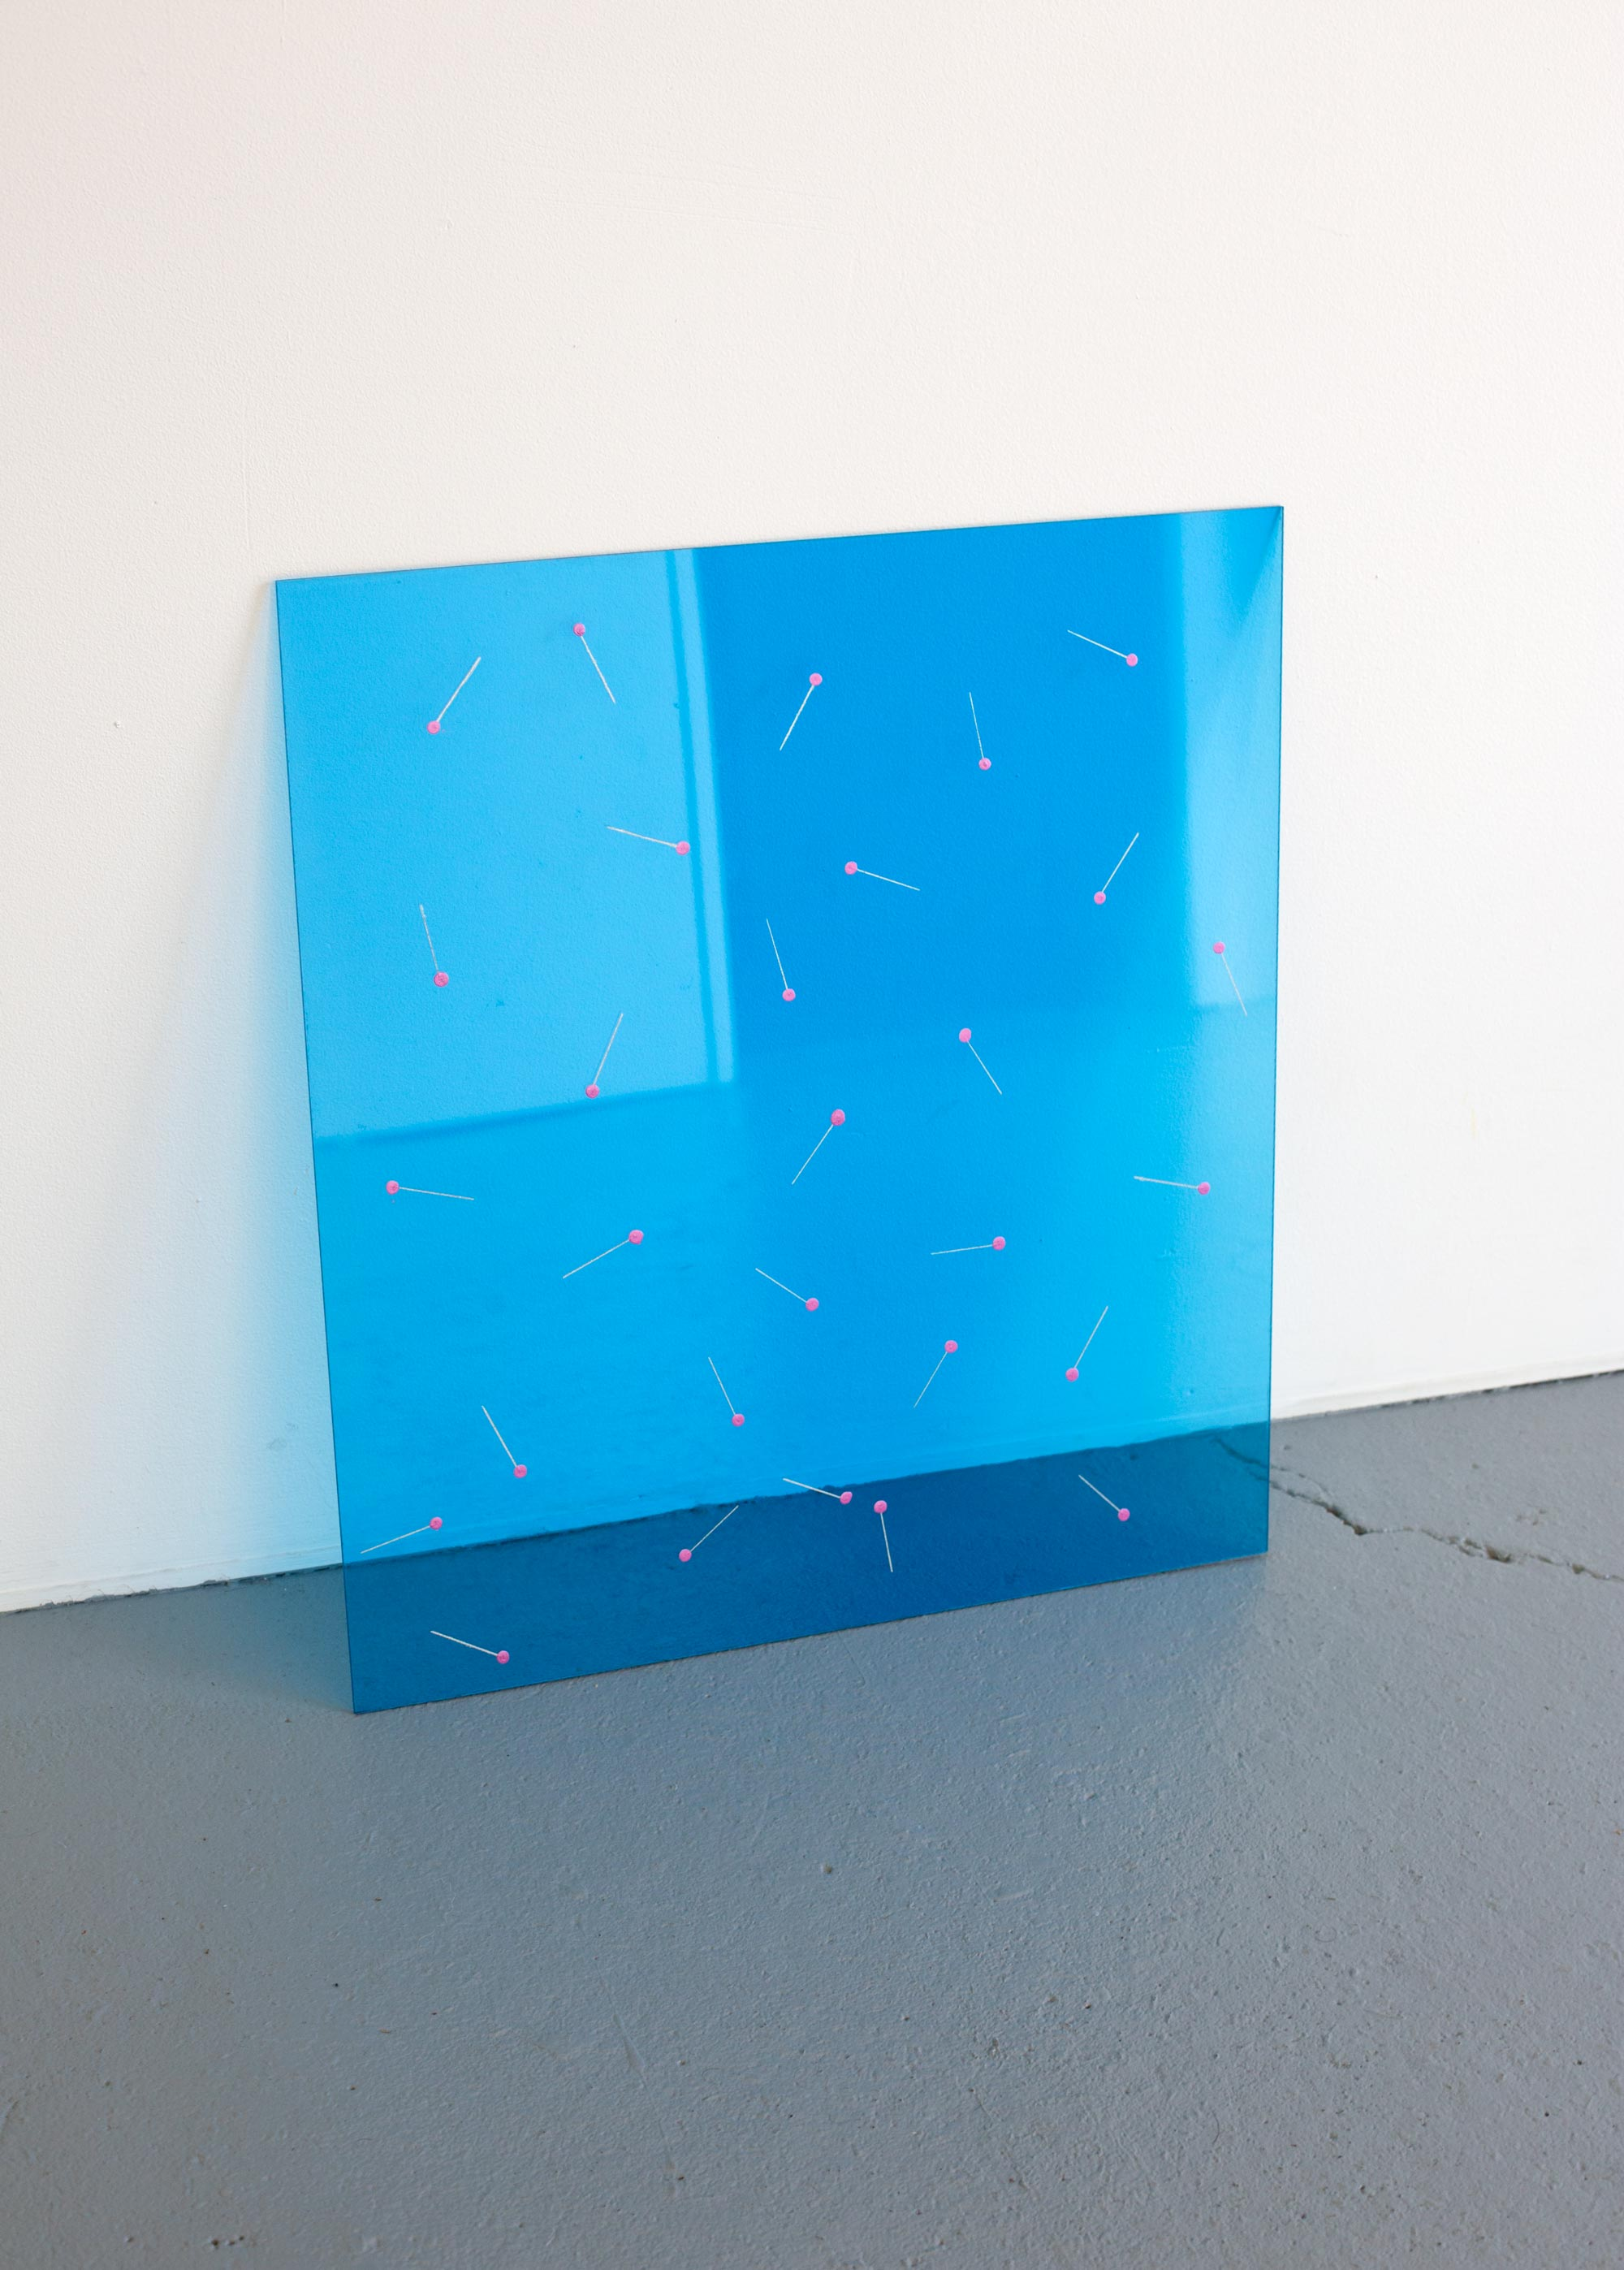 Sewing Room Floor 2 , 2019, acrylic paint and iridescent ink on blue Perspex, 50.5 x 45cm  Photo: Xavier Burrow